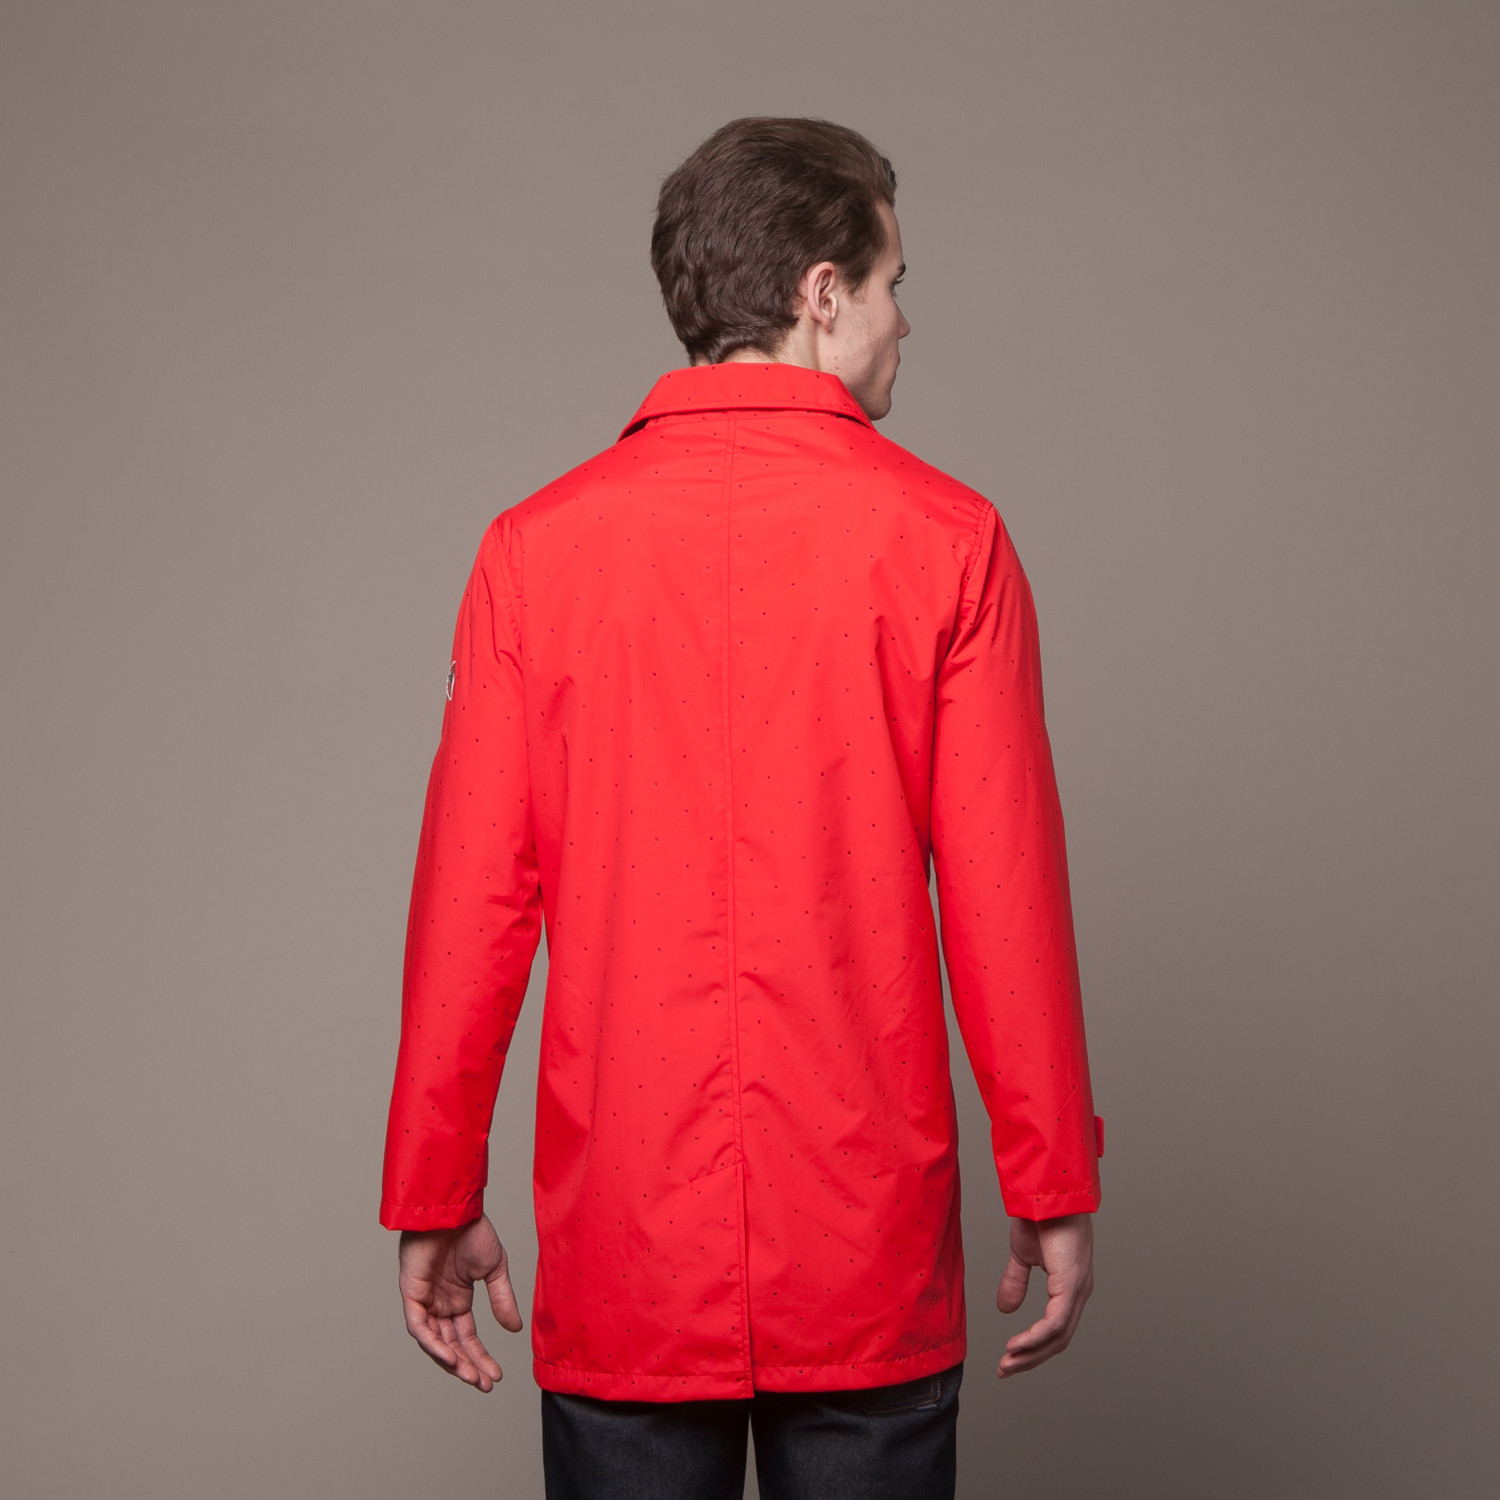 singles in red jacket Get single layer, sfi 32a 1 motor  colors are black, red, and blue available as one-piece suit, jacket, or pants stocked in sizes small - 5xl.